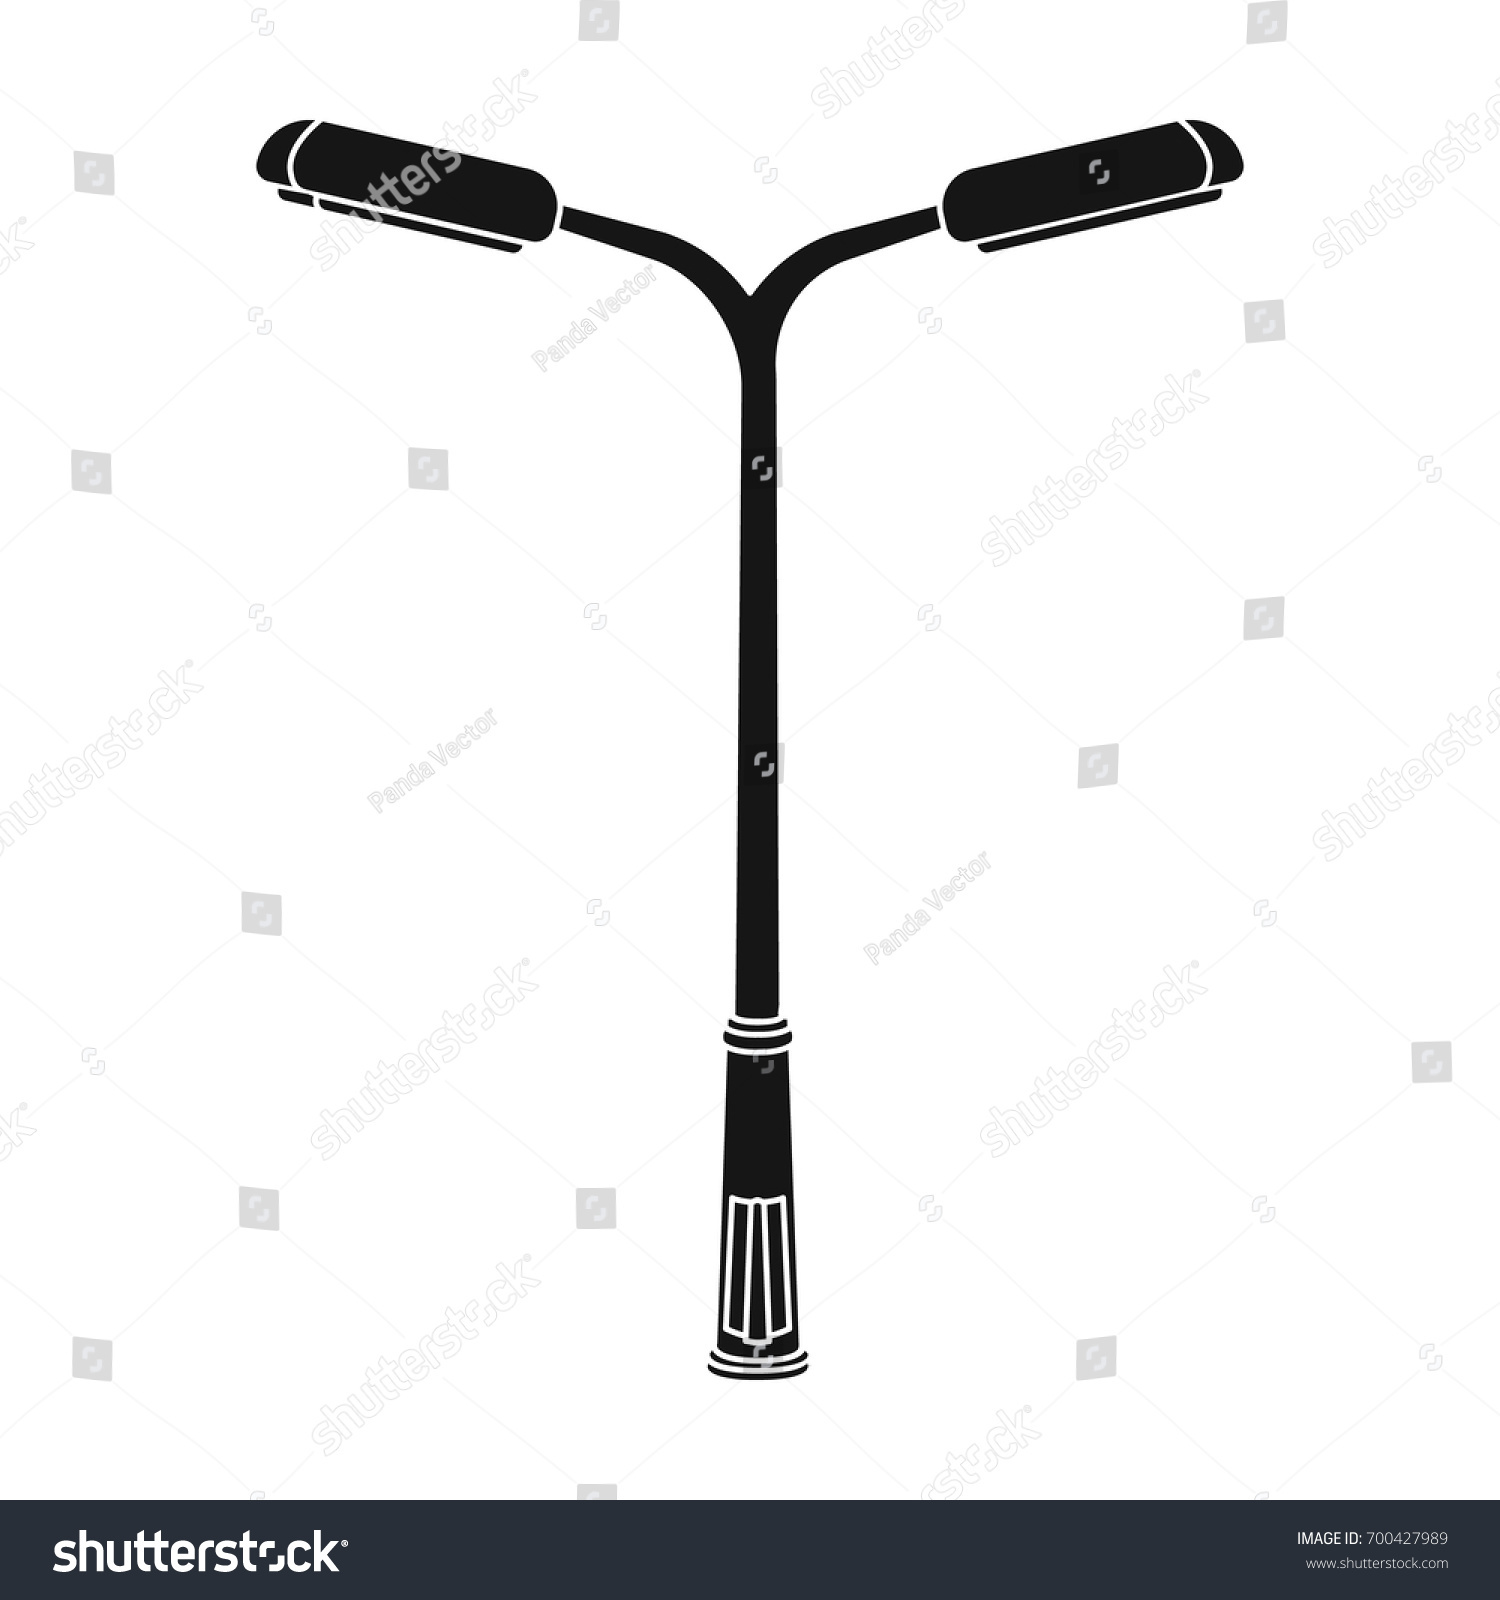 Modern Street Lamplamppost Single Icon Black Stock Vector ... for Modern Street Lamp Post  153tgx